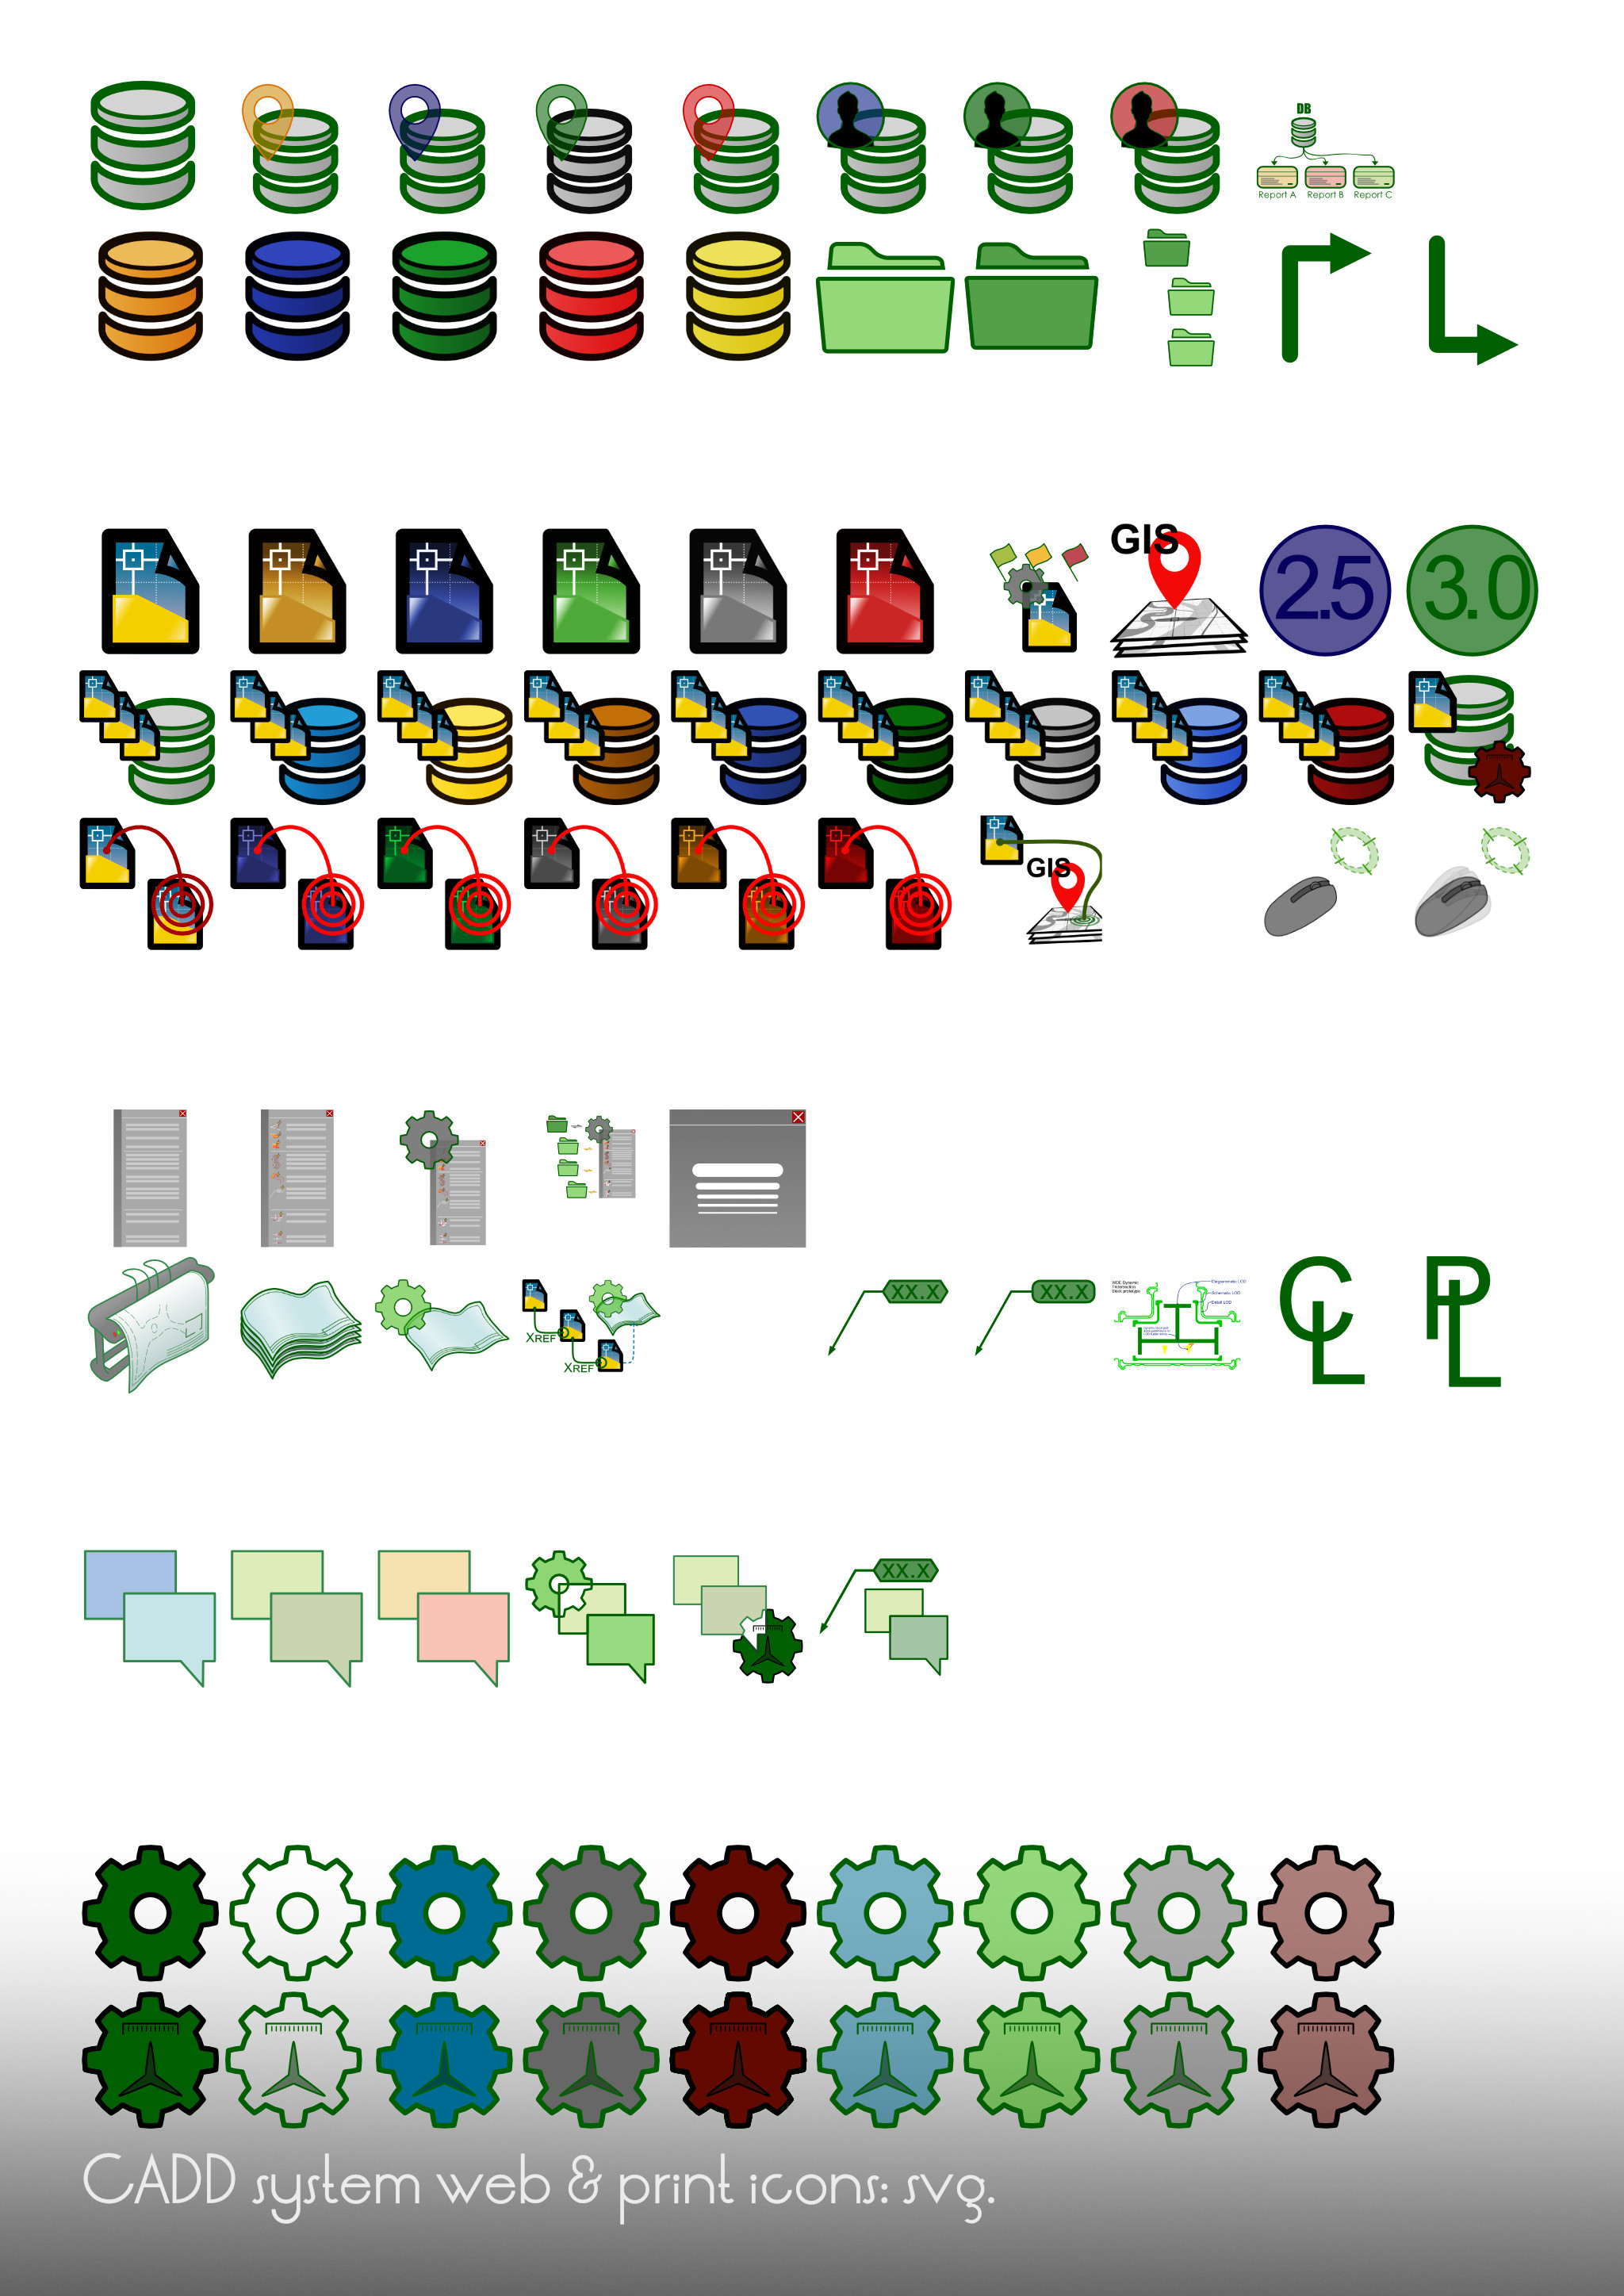 Specific CADD icons developed for a client's extensive help system. These are all new icons for in-house CADD systems documentation; due to the highly technical nature of the concepts, and high time-on-page, these icons have more detail than typical.